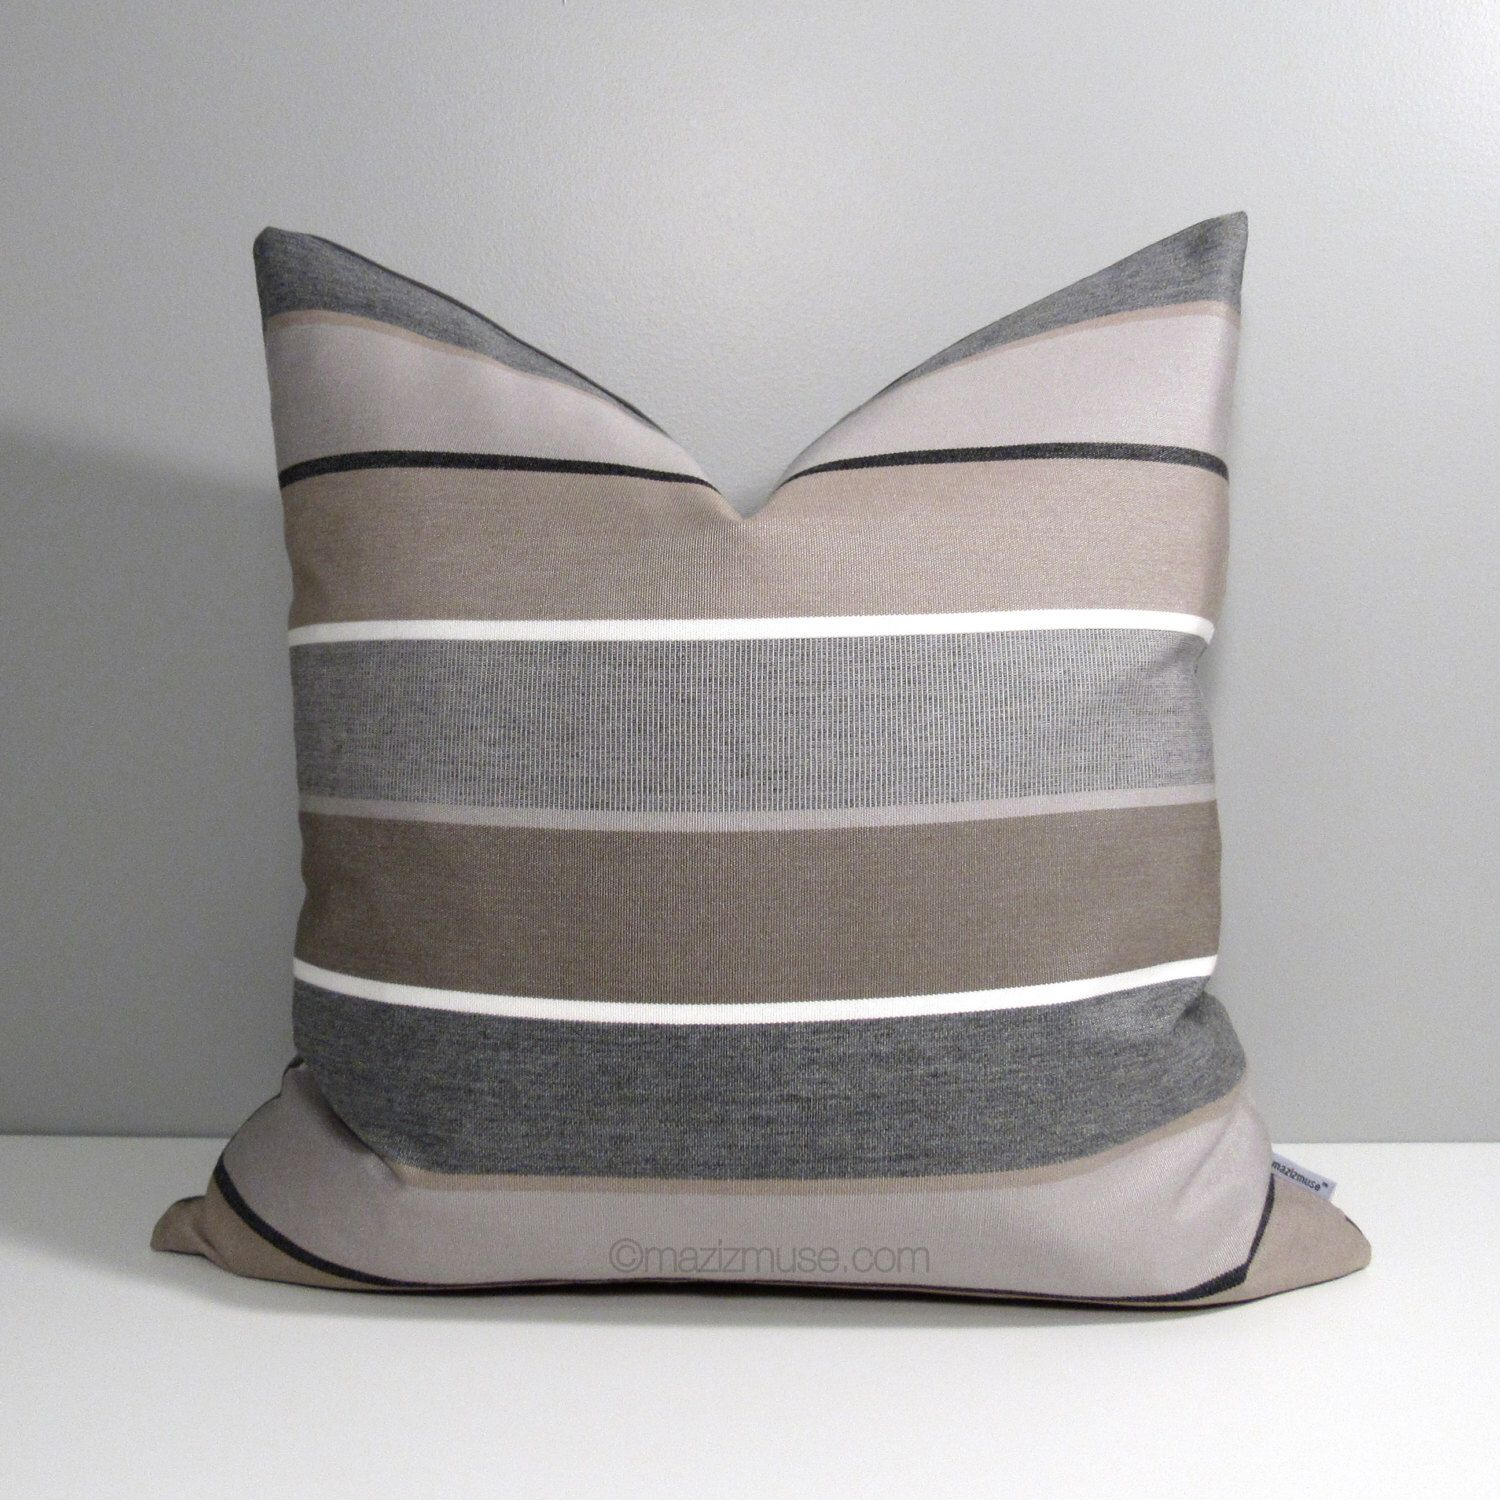 on garden pillow product solid cushion textured gray pillows free home squared outdoor chair shipping